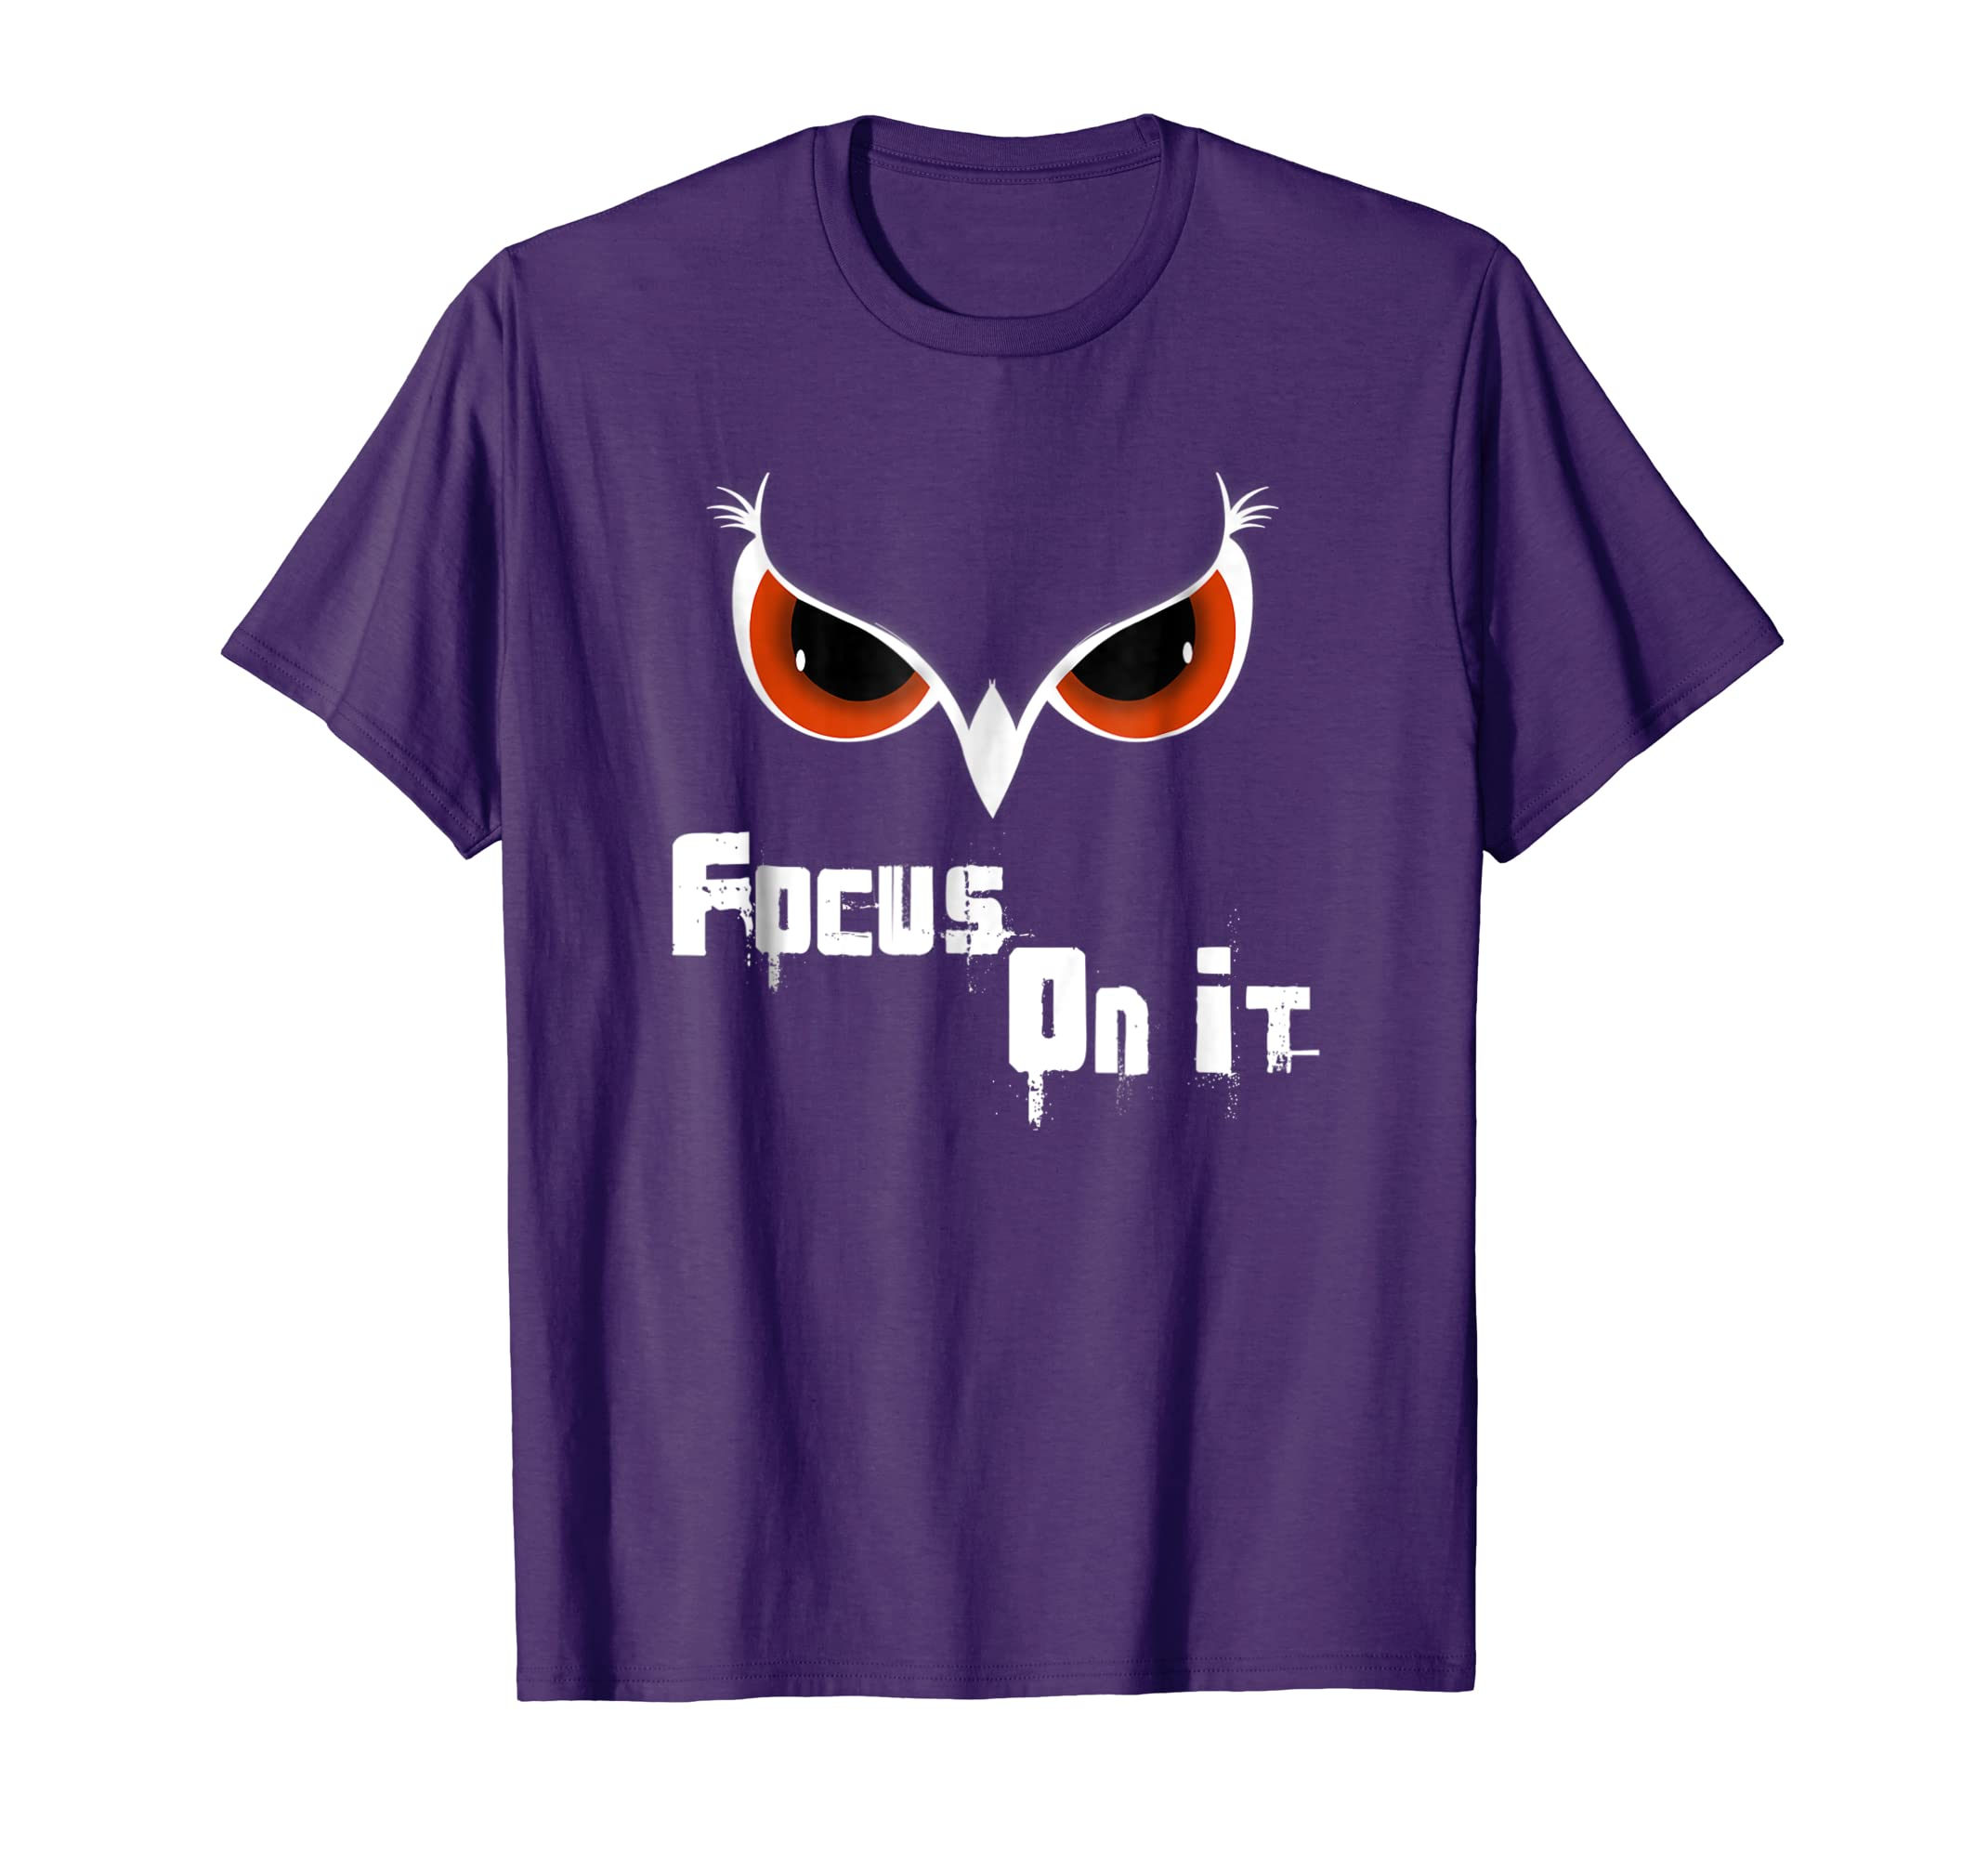 Focus  Exclusion, Matter eagle eyes, focus on it, T Shirt-Teesml